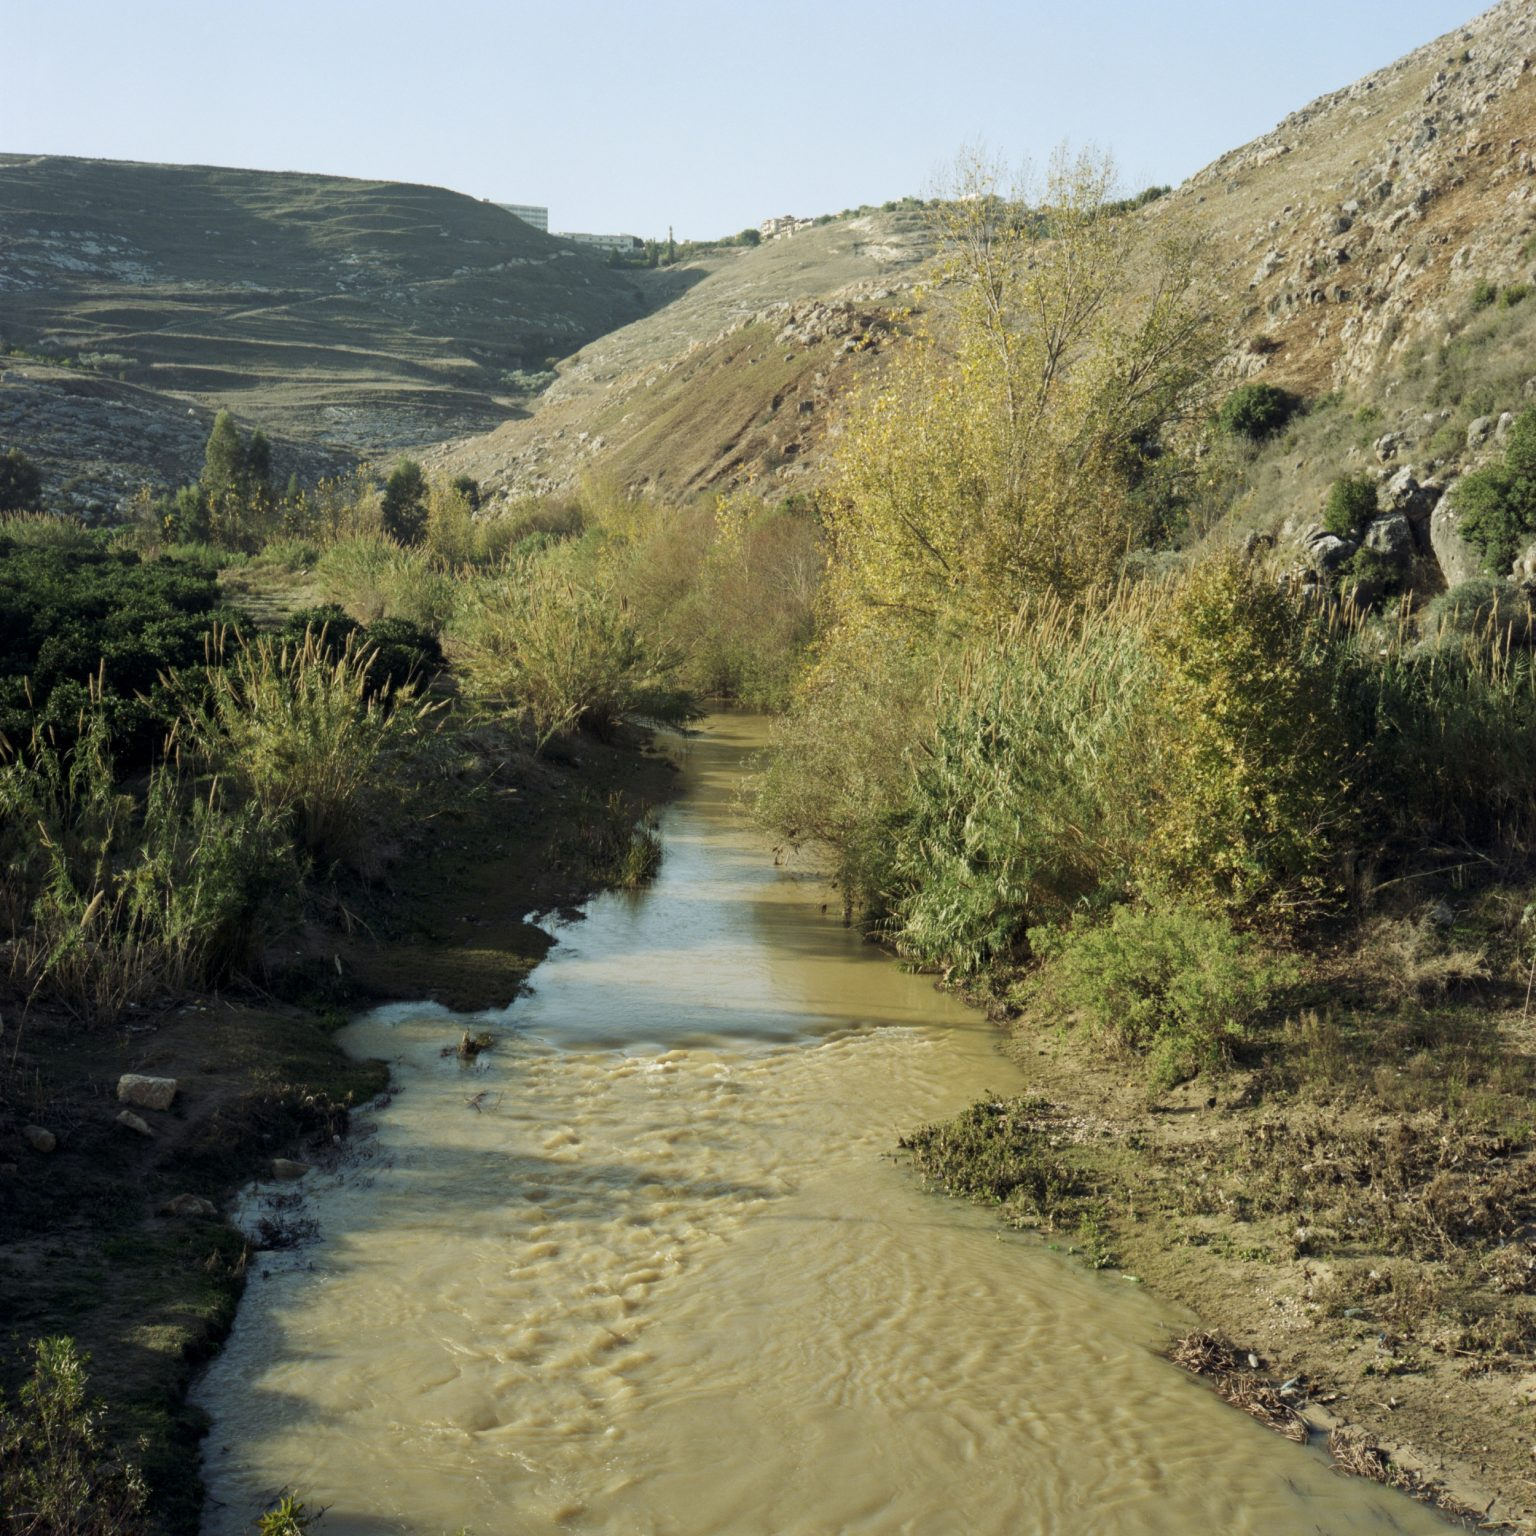 Litani, Lebanon. The river Litani marks the area of operation of Unifil troops in southern Lebanon, and has always been a natural limit to the invading Israeli troops.